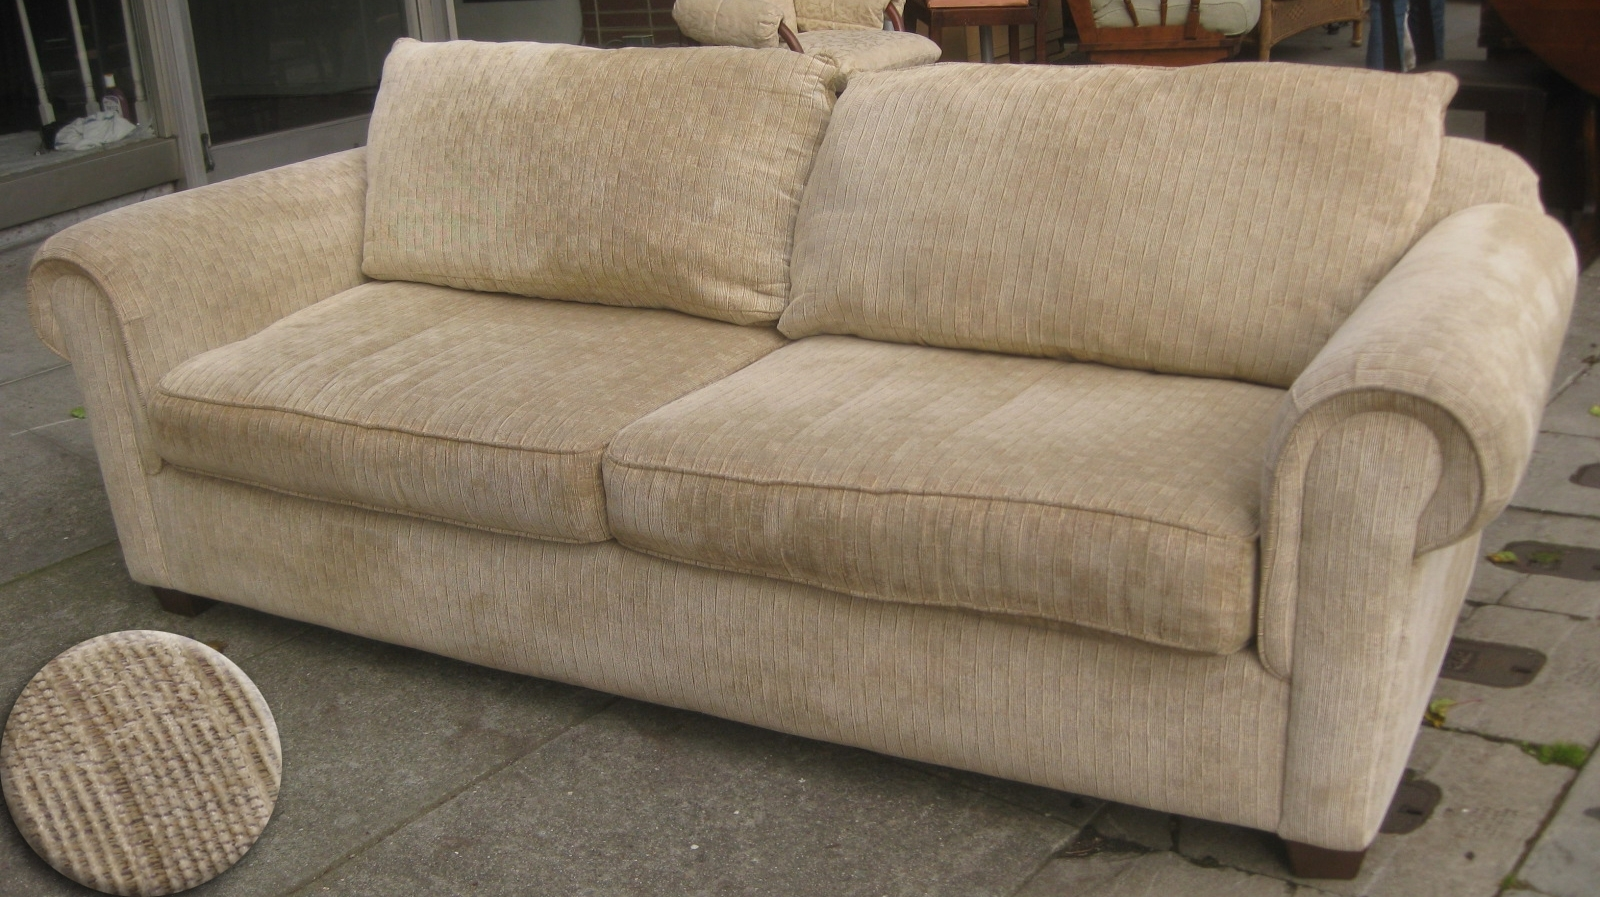 Uhuru Furniture & Collectibles: Sold – Soft Sofa – $80 Regarding 2019 Soft Sofas (Gallery 8 of 20)